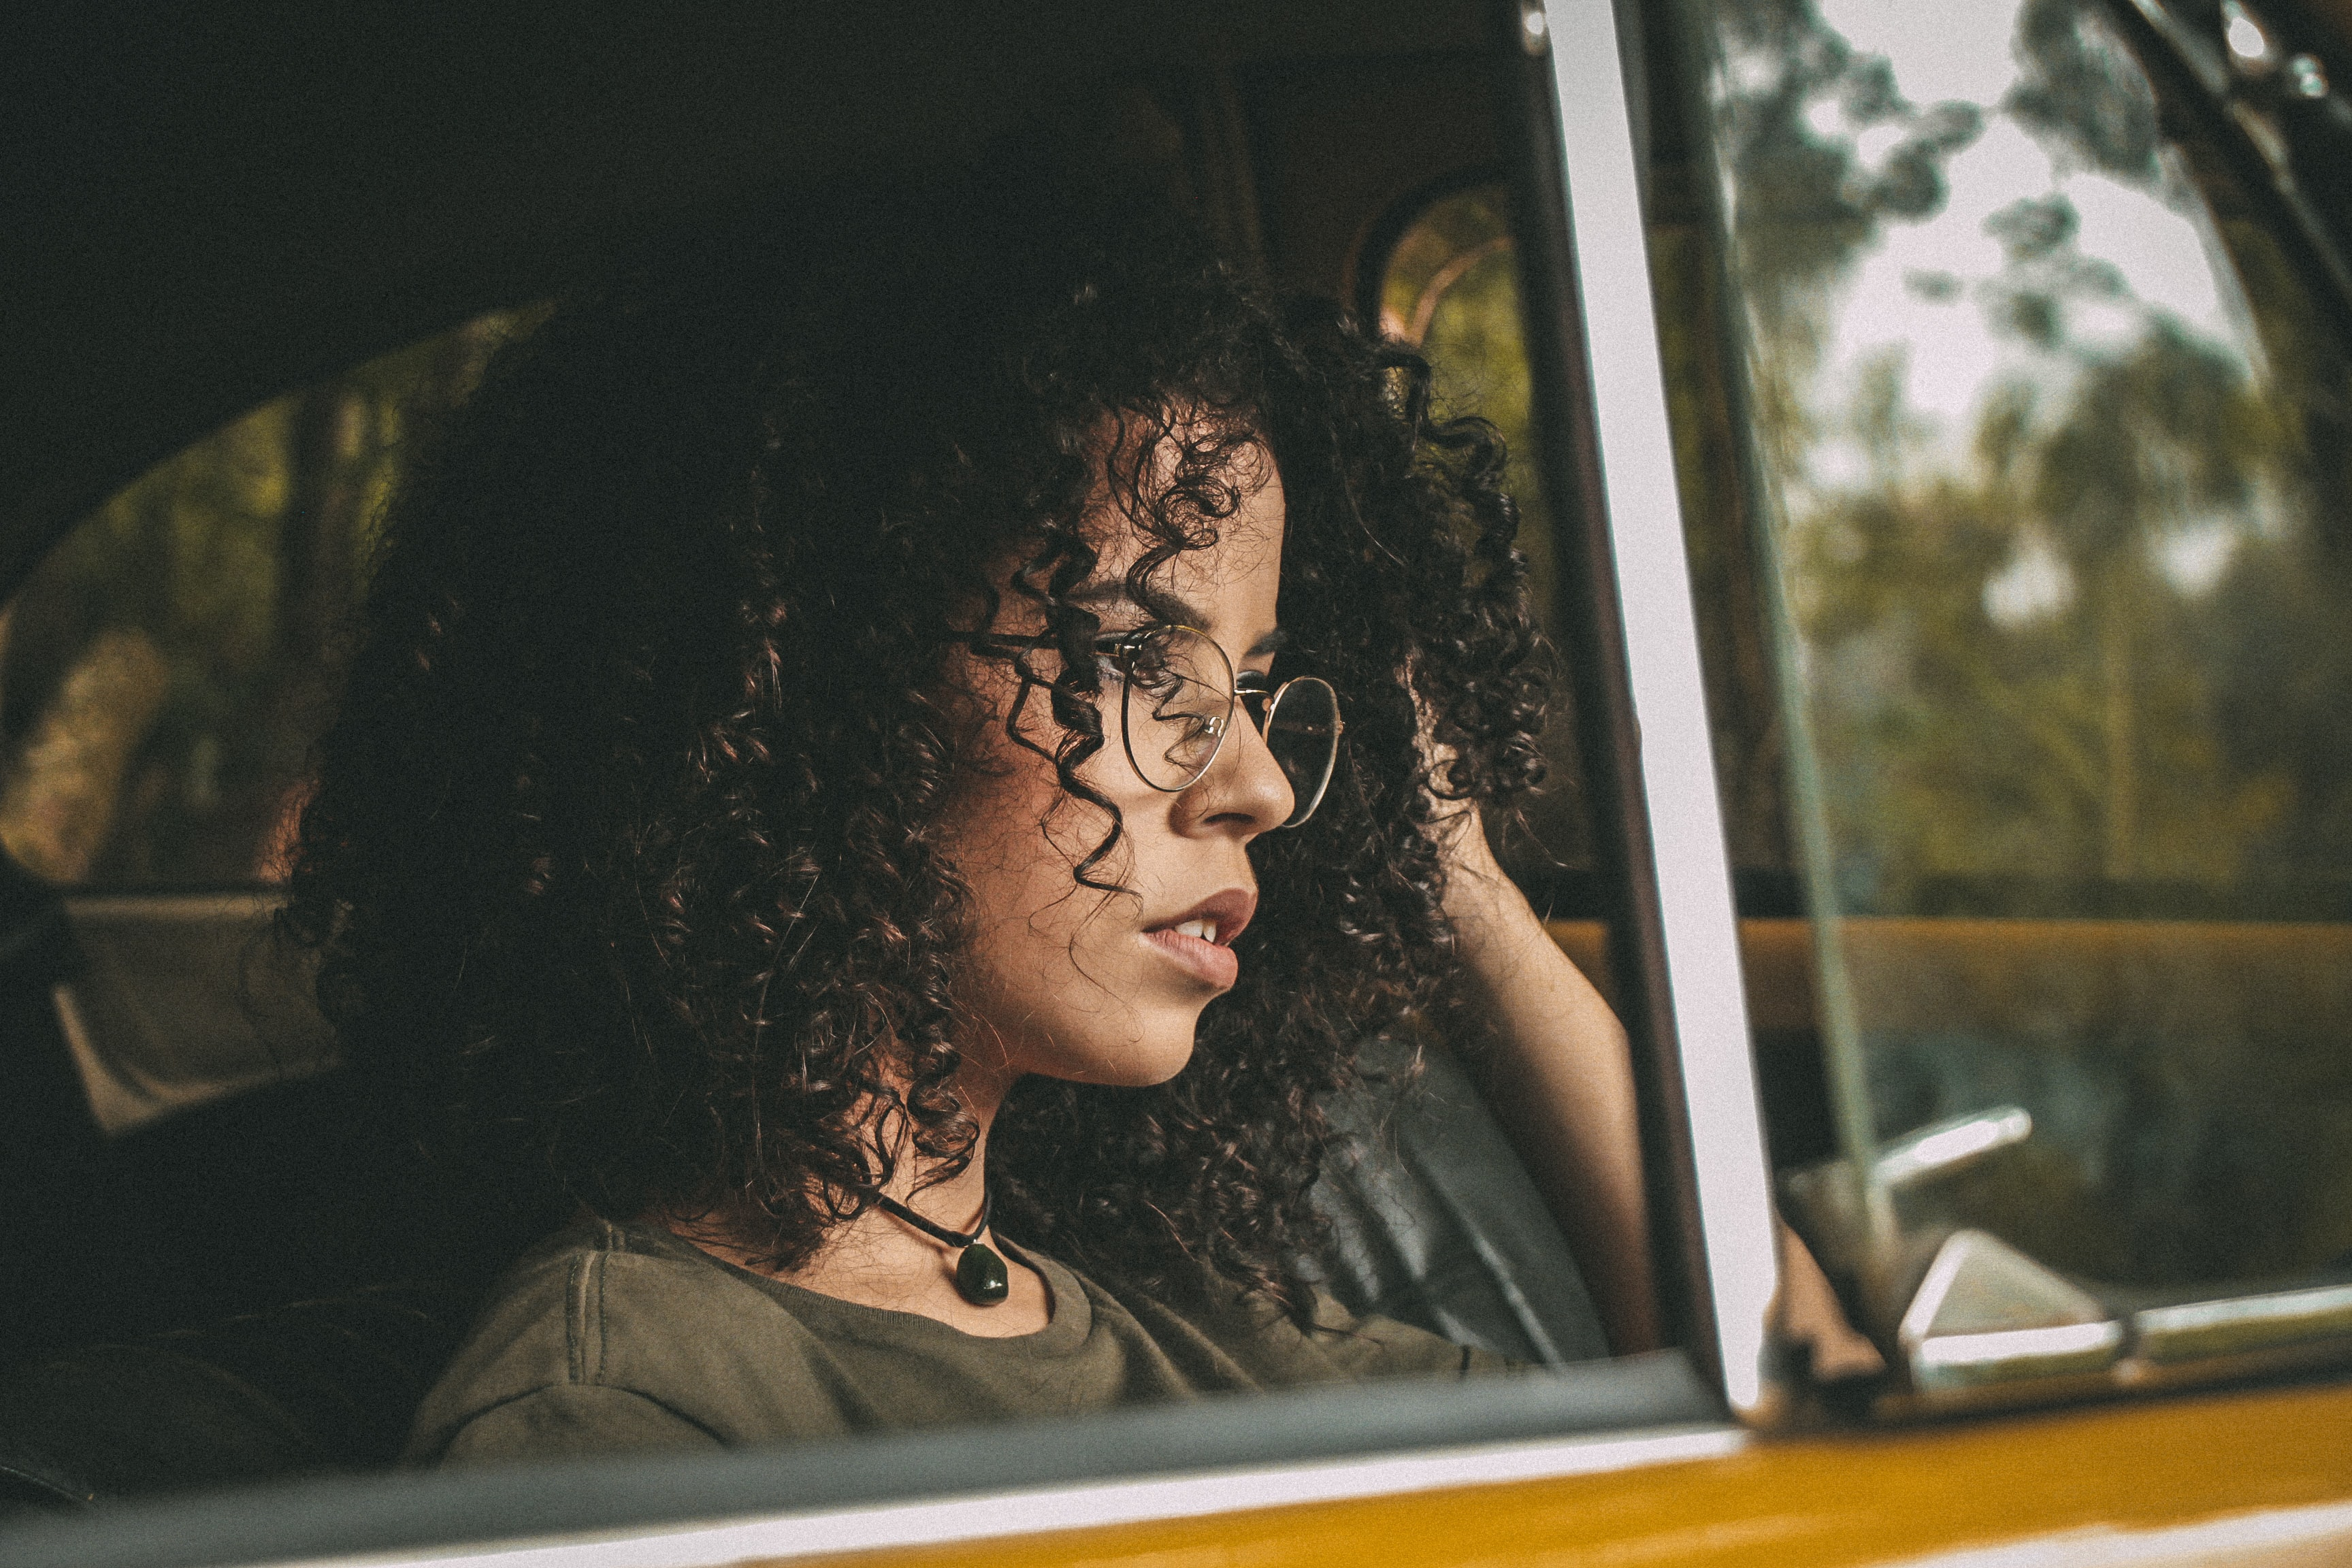 Woman with curly hair and vintage glasses staring out a car window